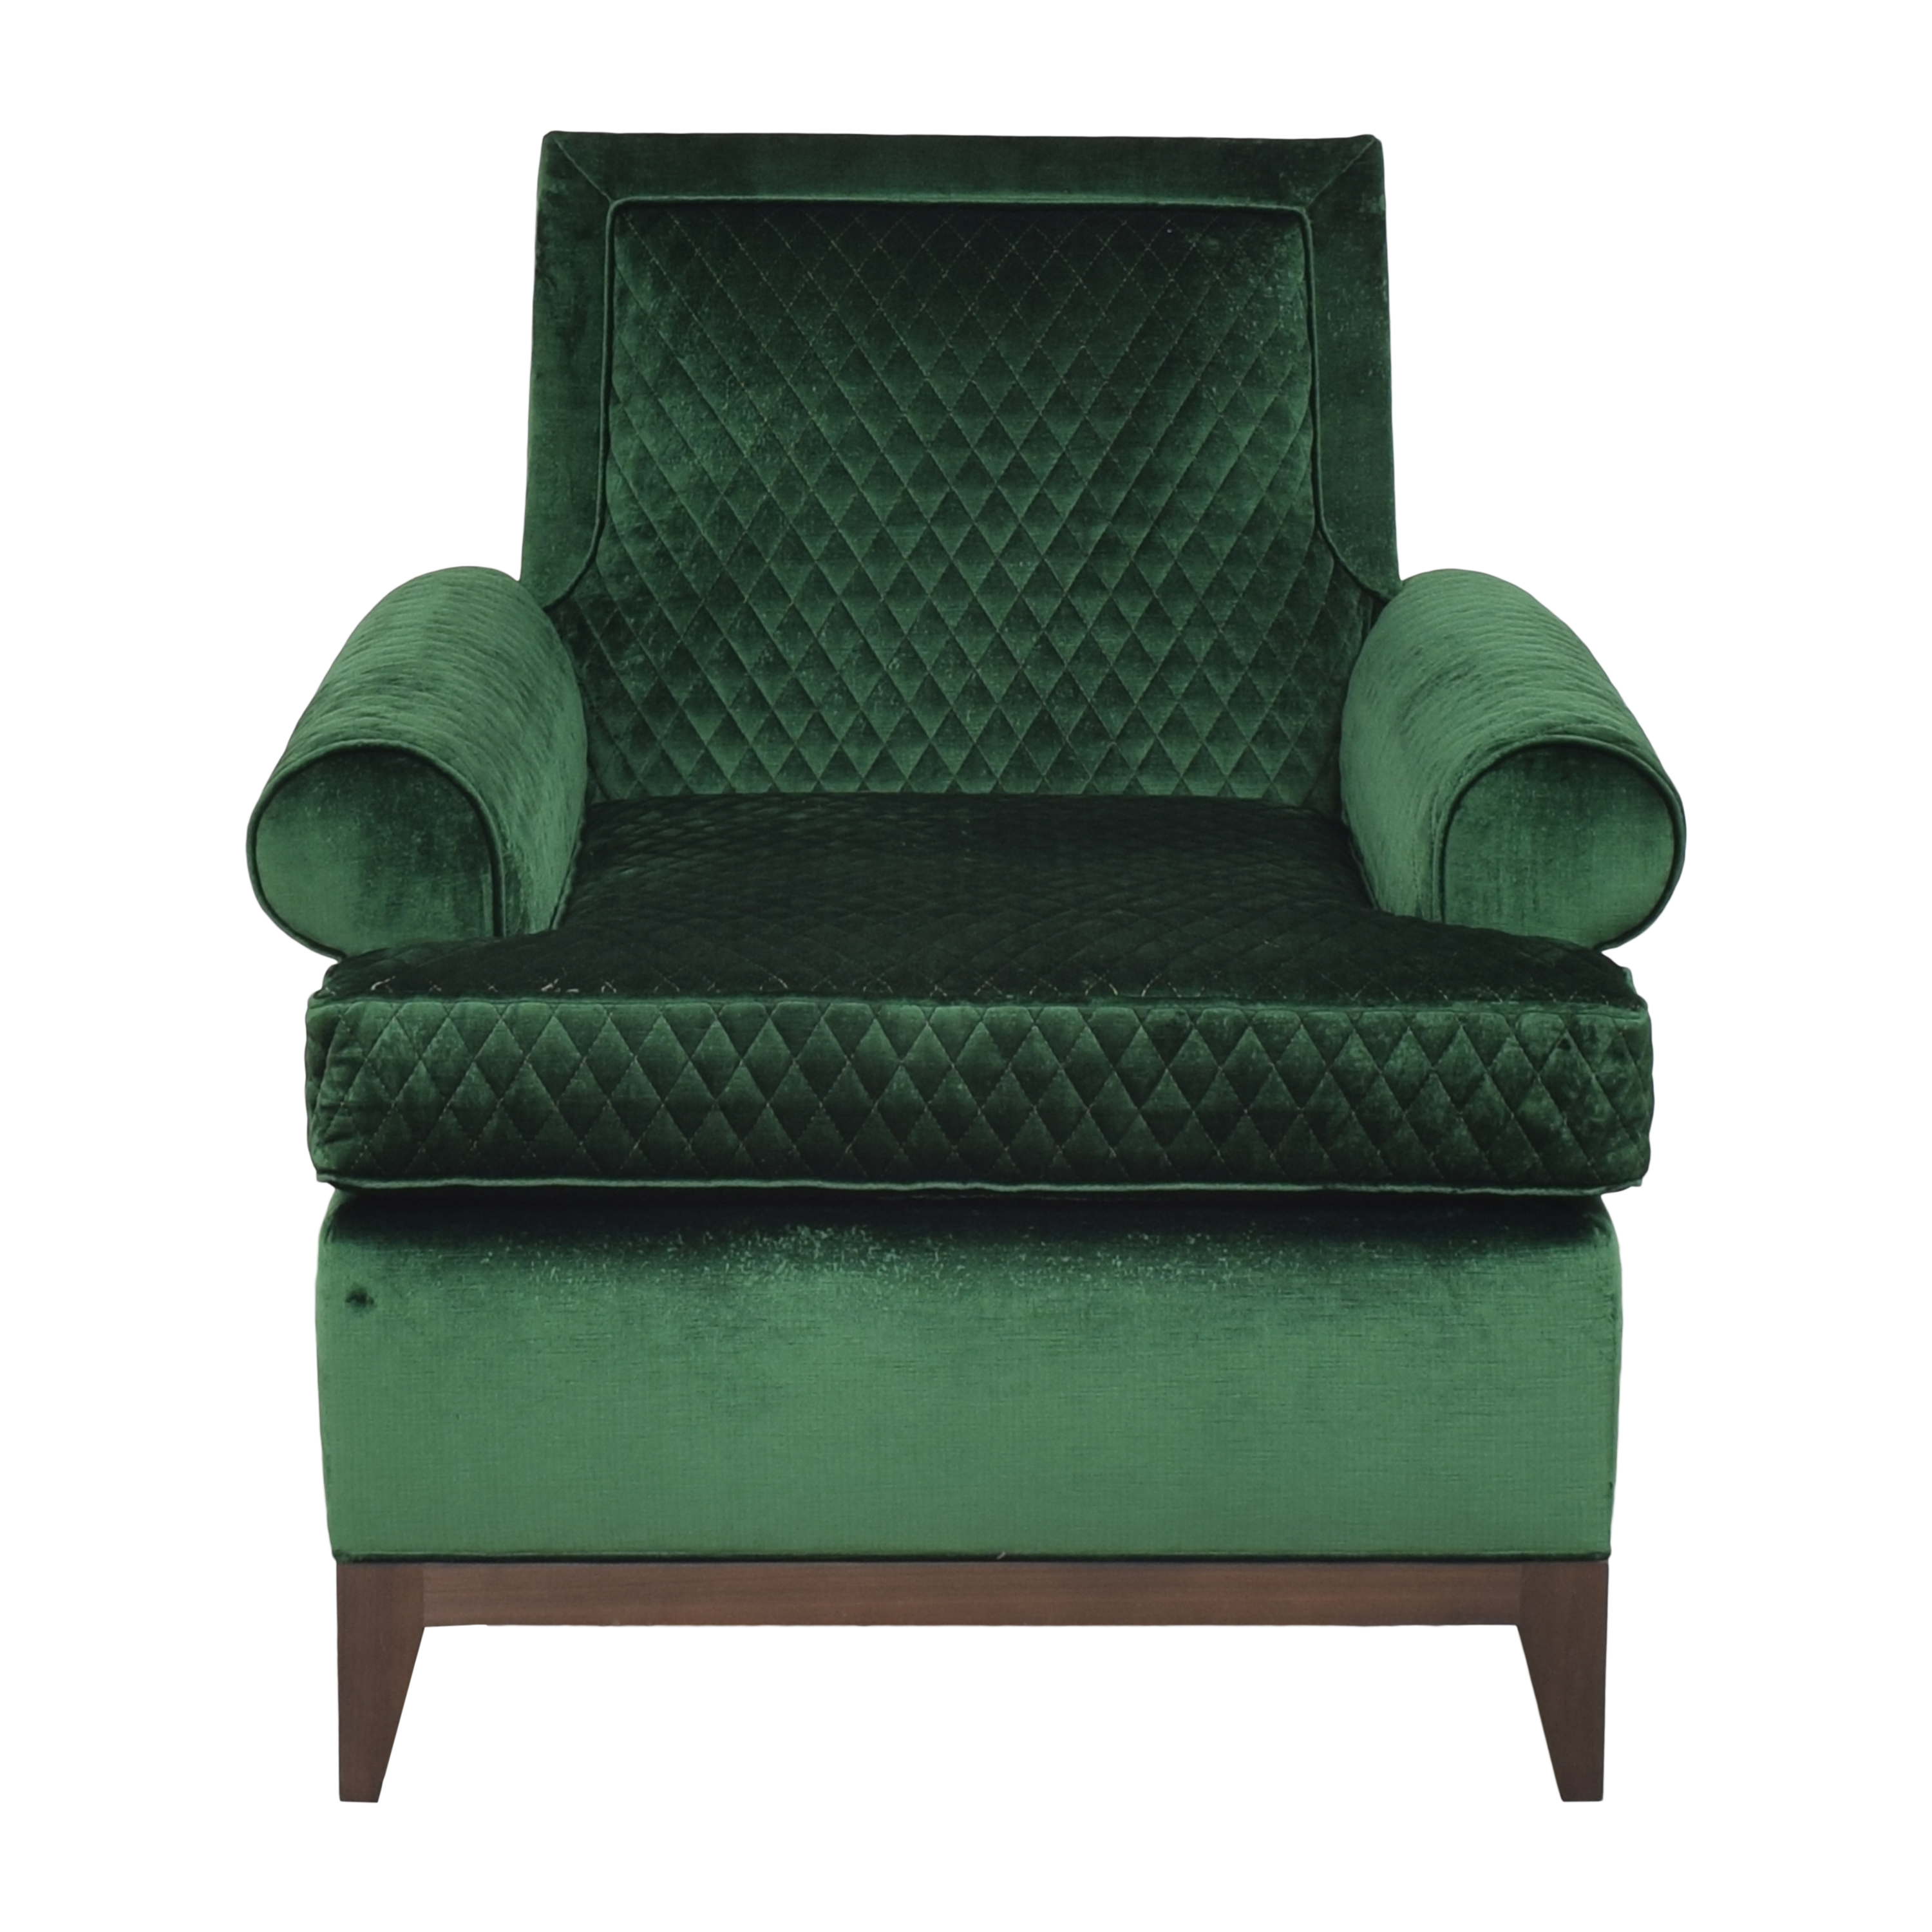 shop The New Traditionalists Quilted Arm Chair The New Traditionalists